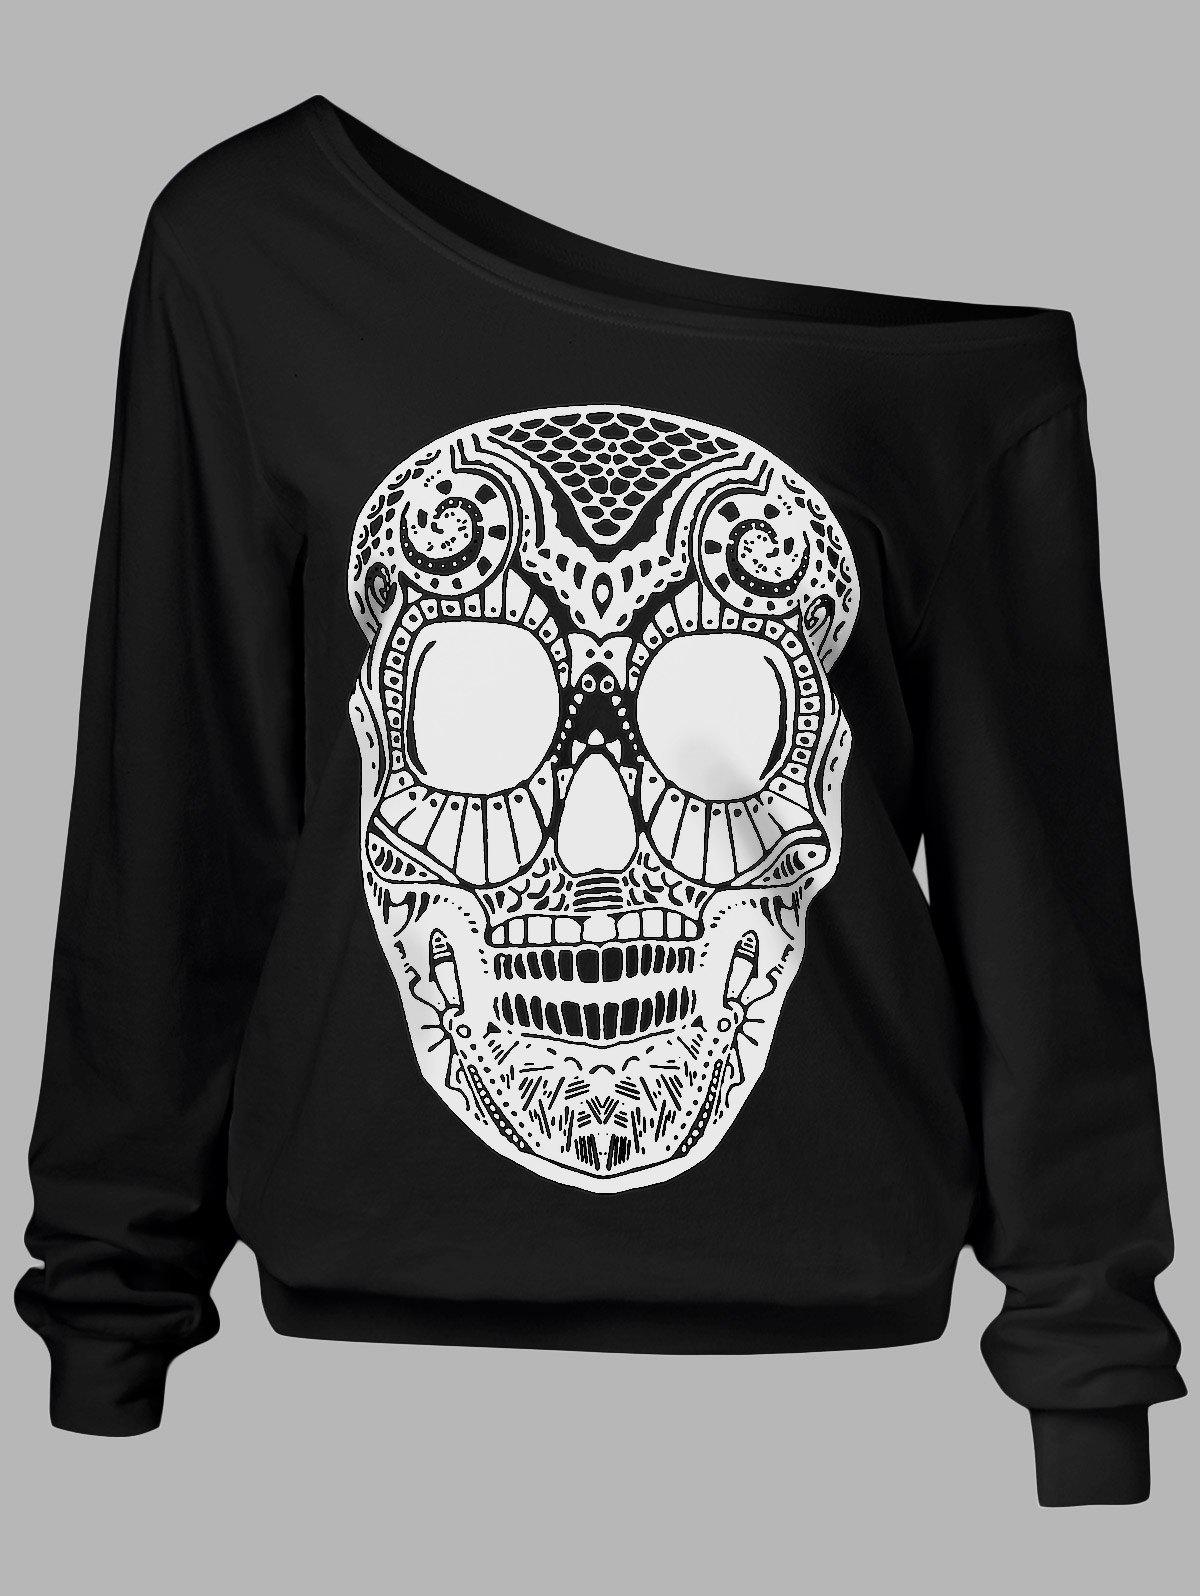 Skull Print Skew Collar Plus Size SweatshirtWOMEN<br><br>Size: 3XL; Color: BLACK; Material: Polyester,Spandex; Shirt Length: Long; Sleeve Length: Full; Style: Casual; Pattern Style: Skulls; Season: Fall,Spring; Weight: 0.3700kg; Package Contents: 1 x Sweatshirt;